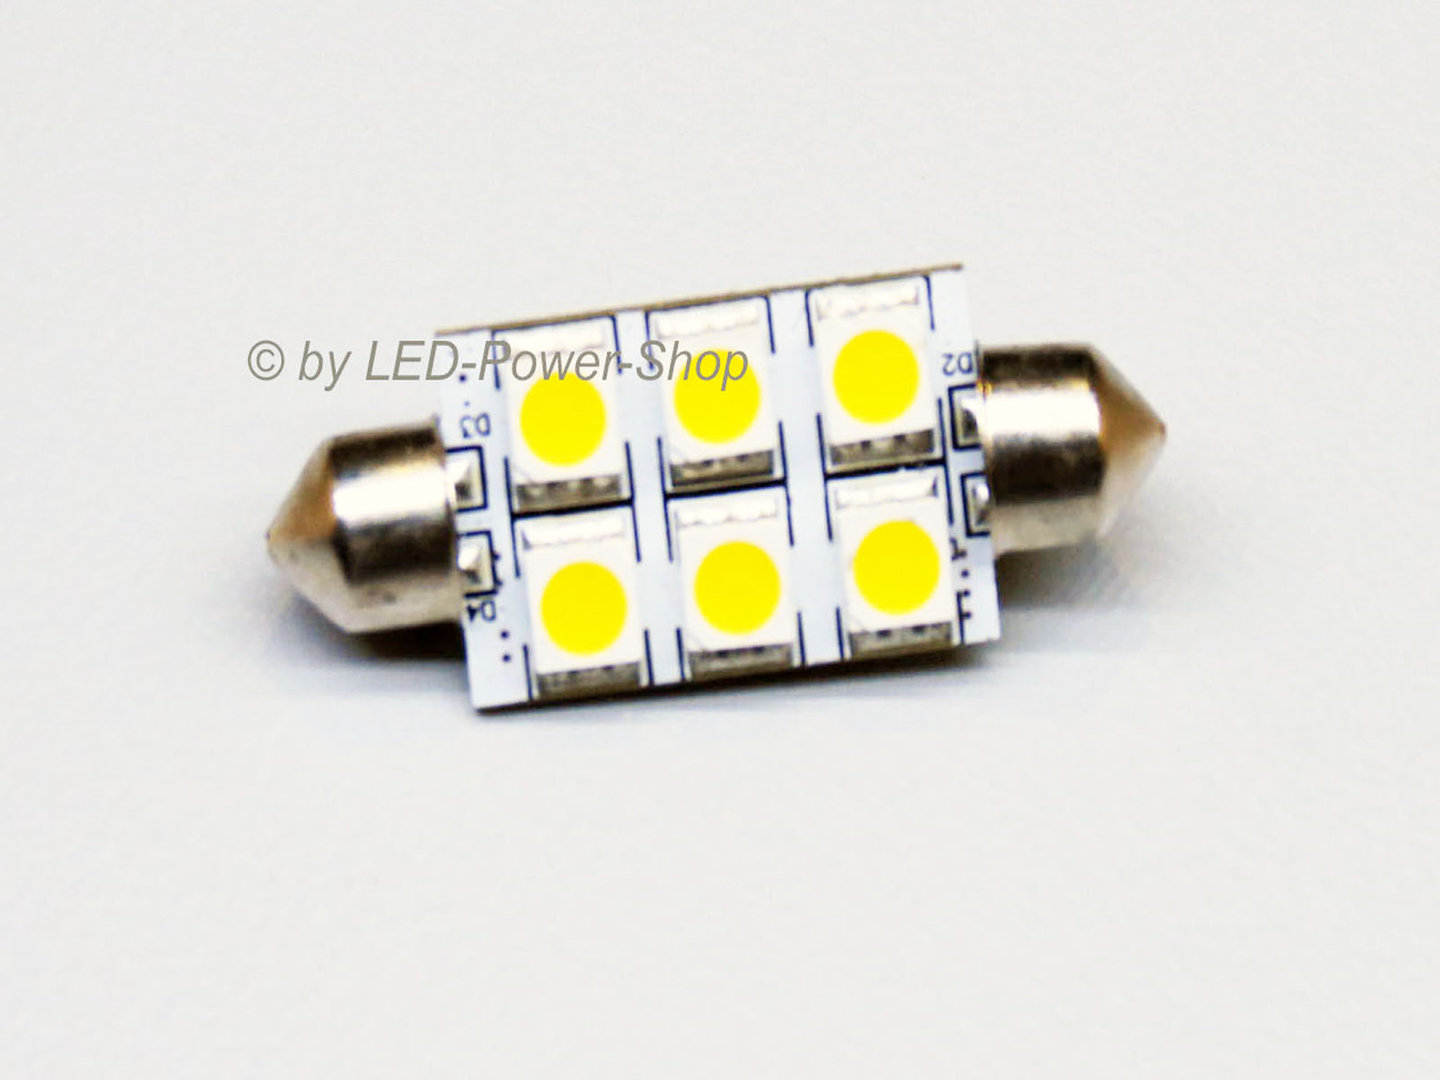 LED Soffitte 6 LED SMD 16x42mm 10-30V warmweiß